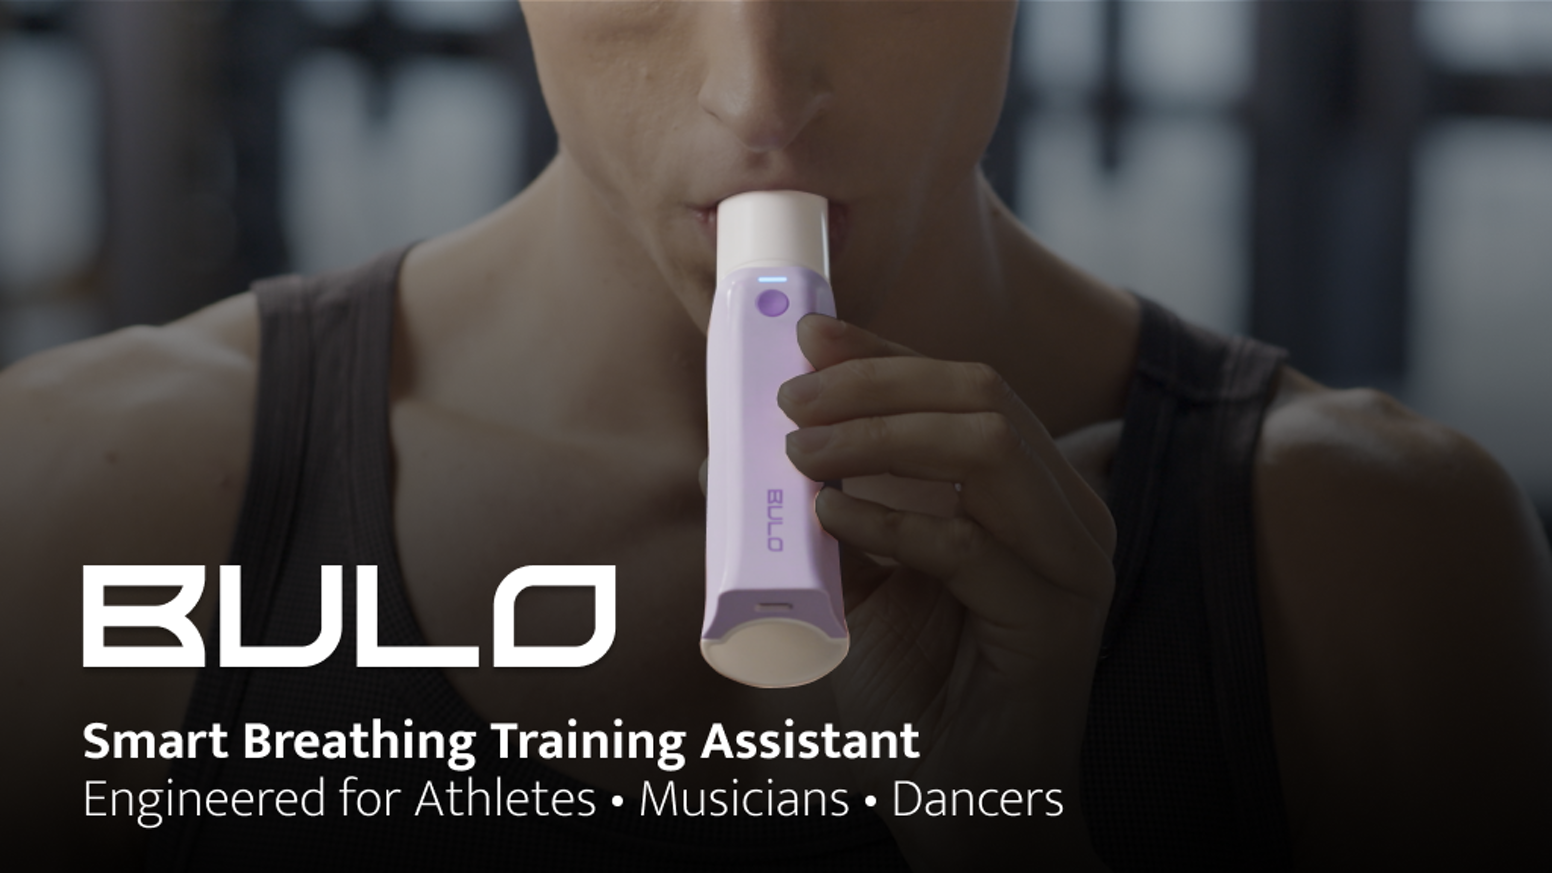 Created by ex-SAMSUNG engineers, Bulo is a hand-held device that measures & analyzes the state of your airflow so you can train better!